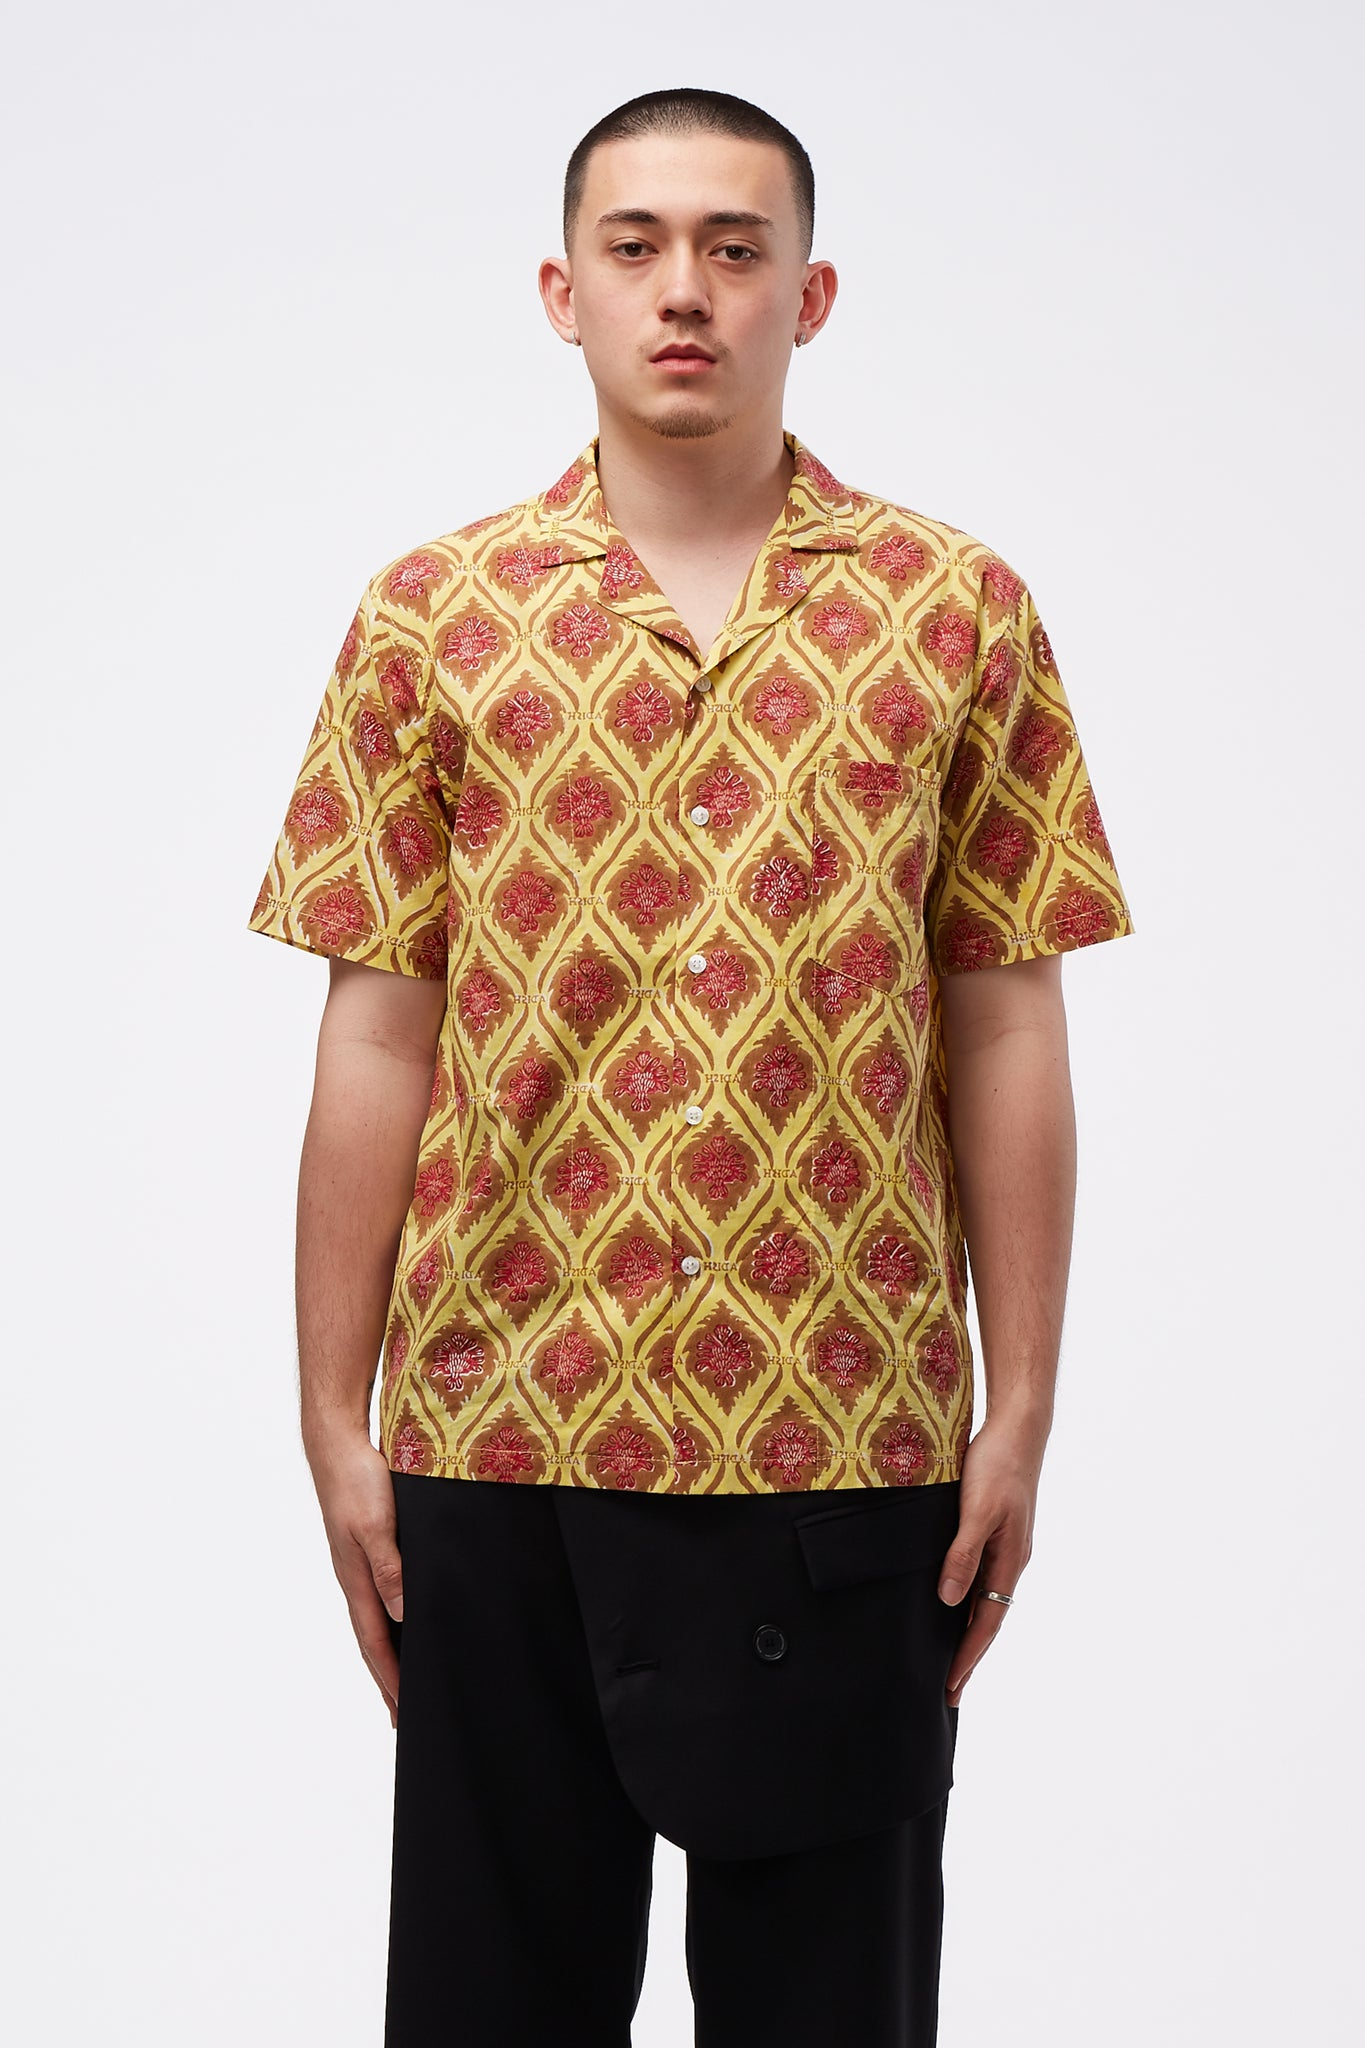 Sawsanas Button Up Short Sleeve Shirt Yellow Brown